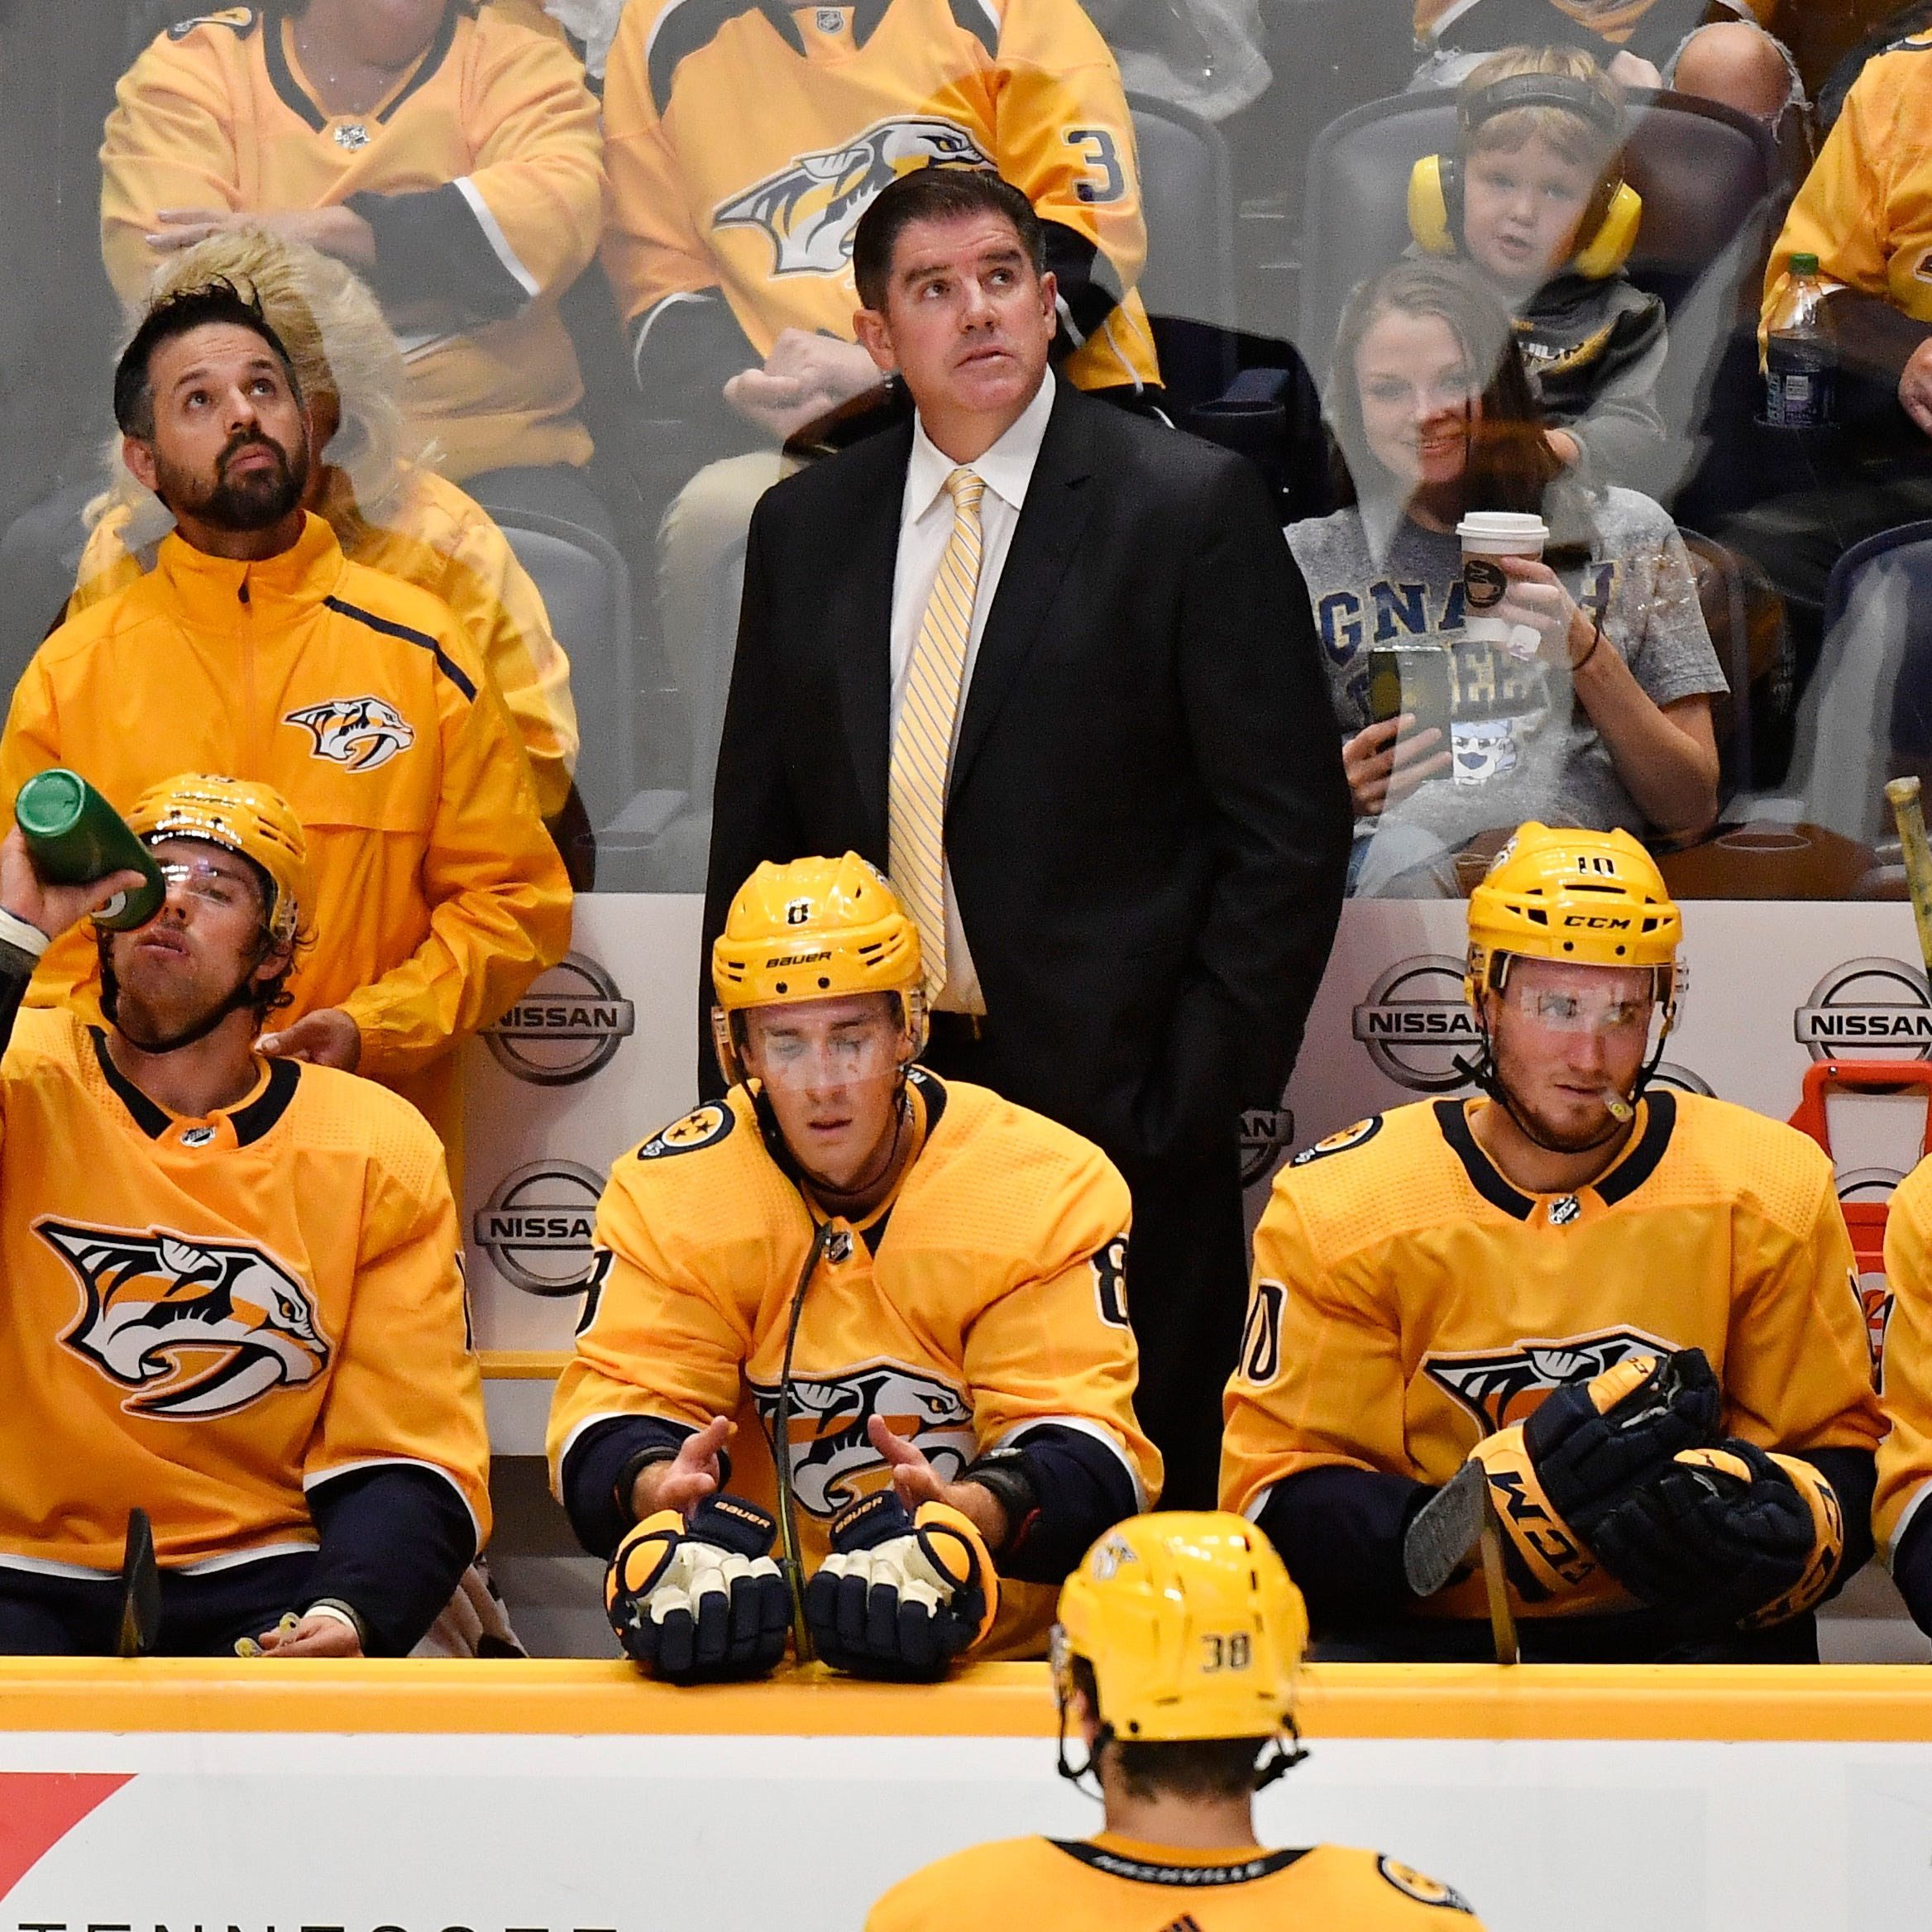 No bull: Predators coach Peter Laviolette dons bull mask after fifth straight win